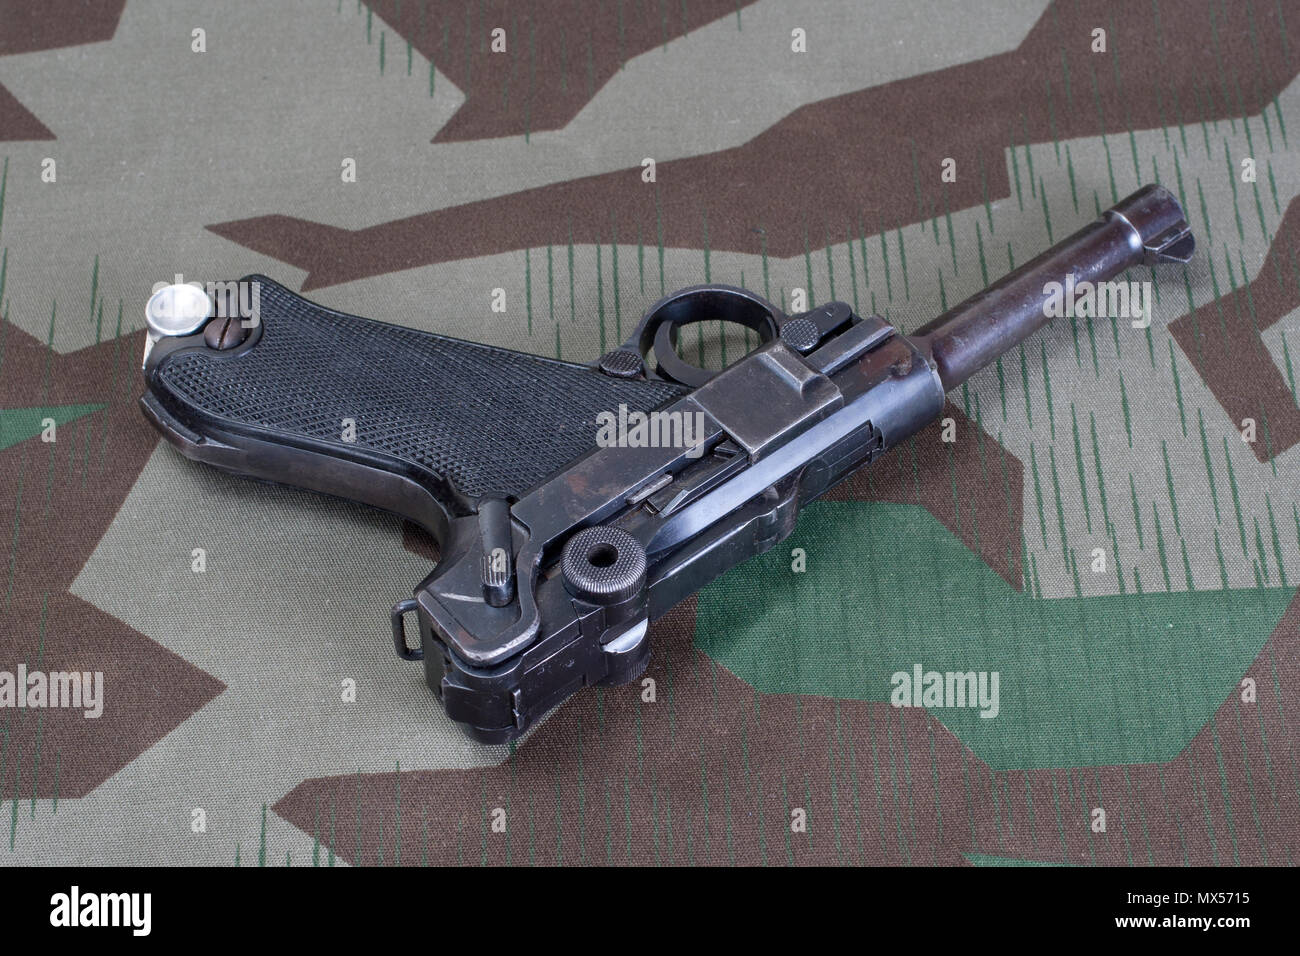 9mm Luger Stock Photos & 9mm Luger Stock Images - Alamy